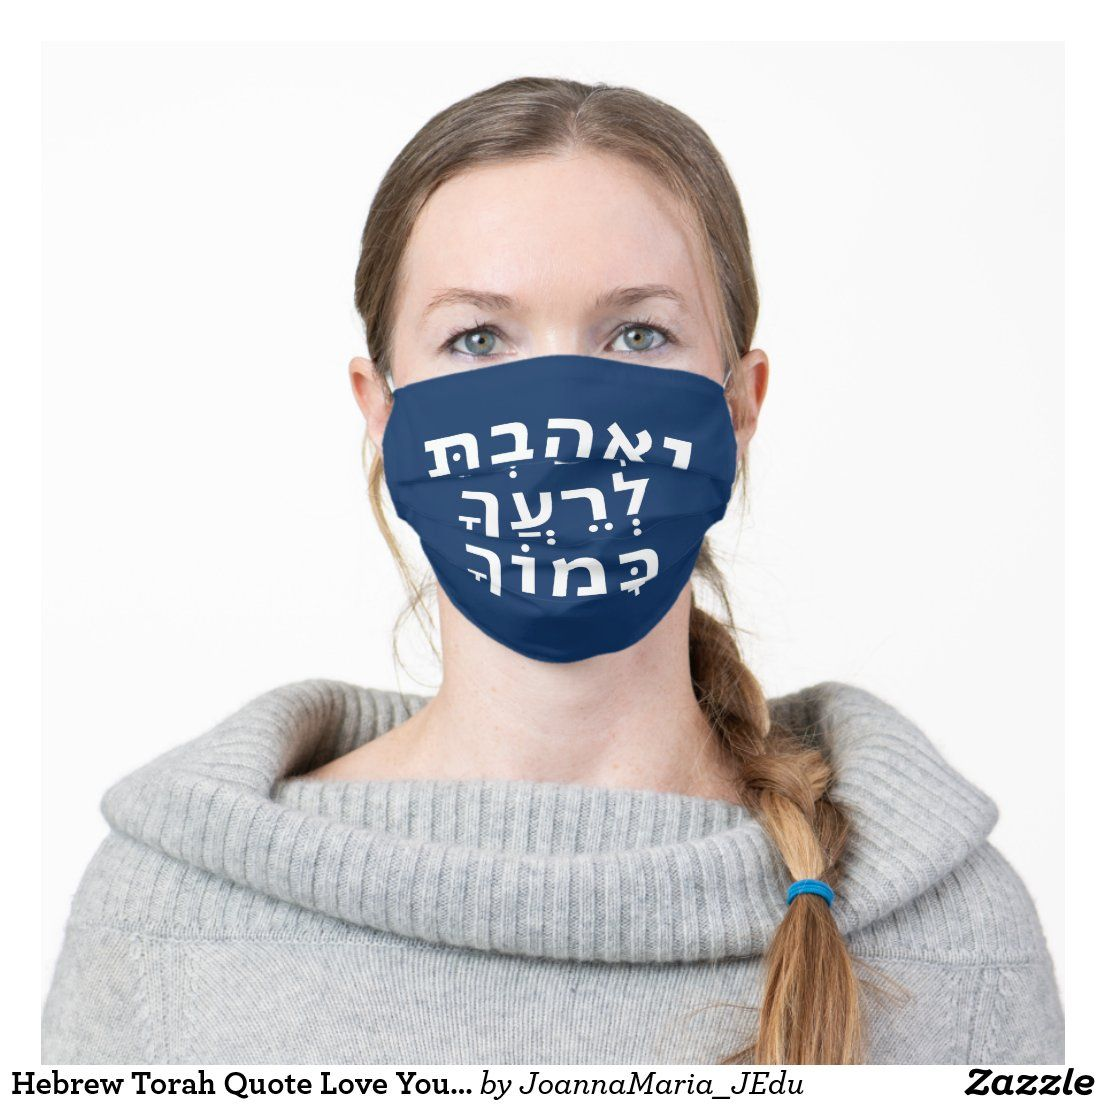 Hebrew Torah Quote Love Your Fellow as Yourself Cloth Face Mask | More @ modernjudaica.online | Hebrew Love Your Fellow As Yourself Black Cotton Face Mask #Love #Torah #Bible #Inspiring #BiblicalQuote #LoveYourNeighbor #LoveYourFellow #Hebrew #typography #words #JewishGift #Jewish #Judaica #Justice #Facemask #Mask #HebrewFacemask #Health #Covid